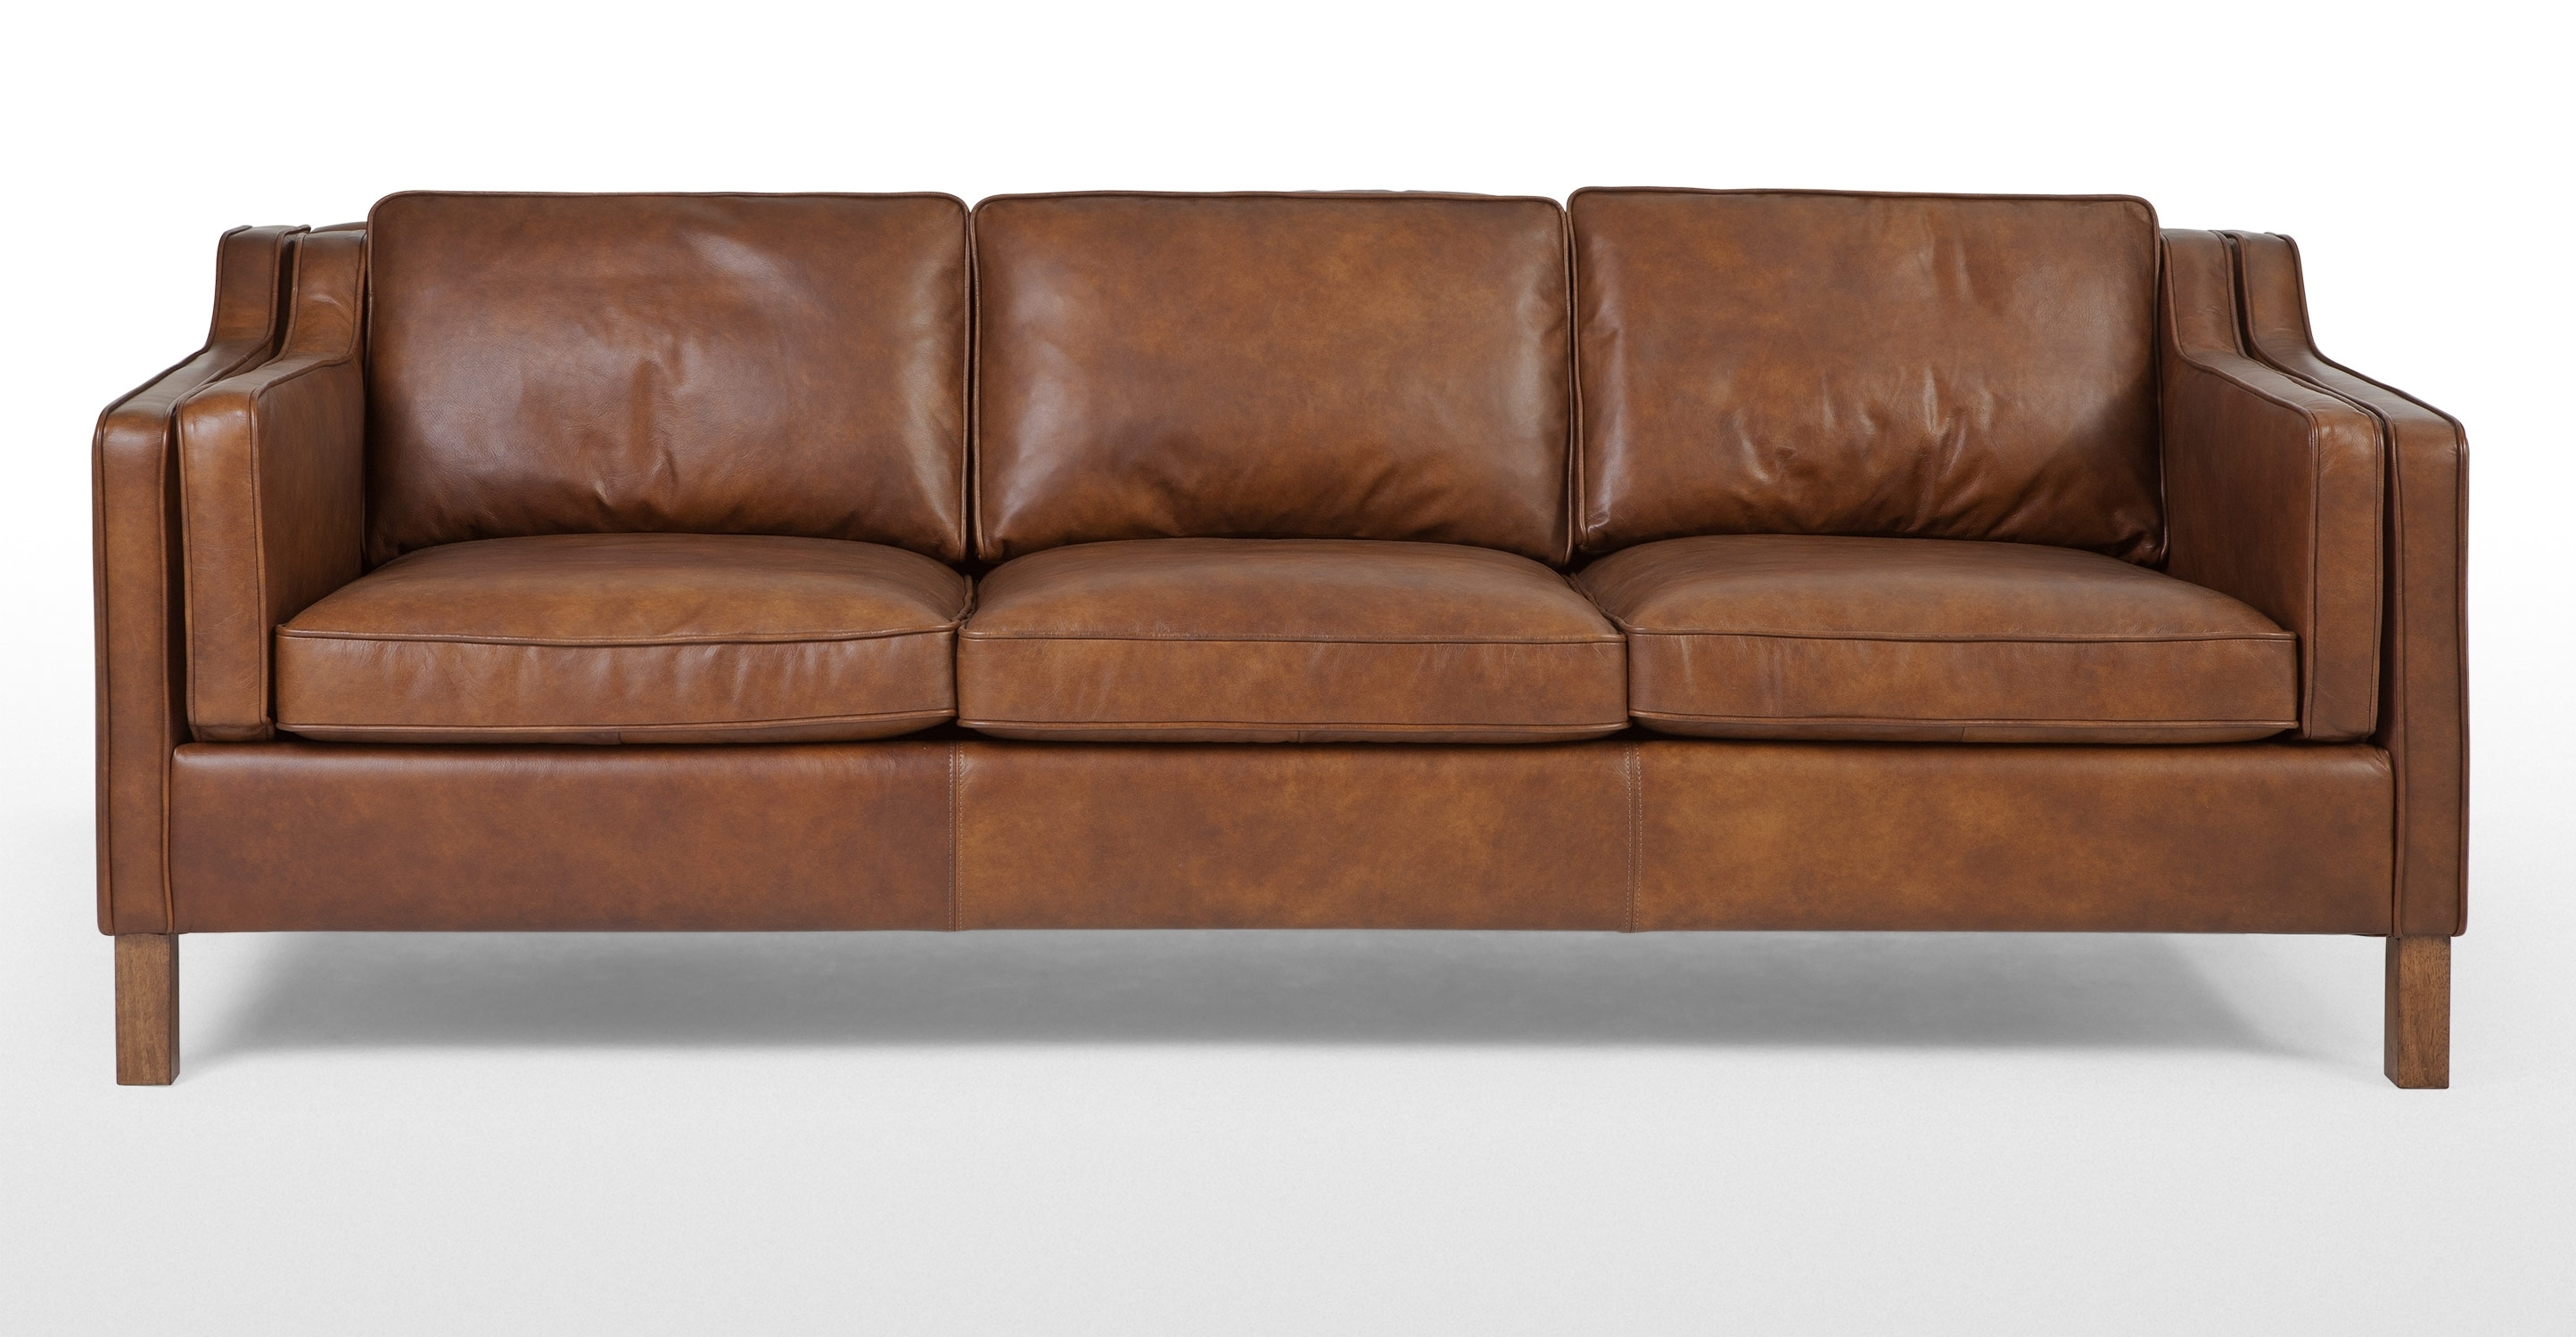 What Colours Go With Tan Adorable Tan Leather Sofa – Home Design Ideas Inside Well Known Light Tan Leather Sofas (View 14 of 15)